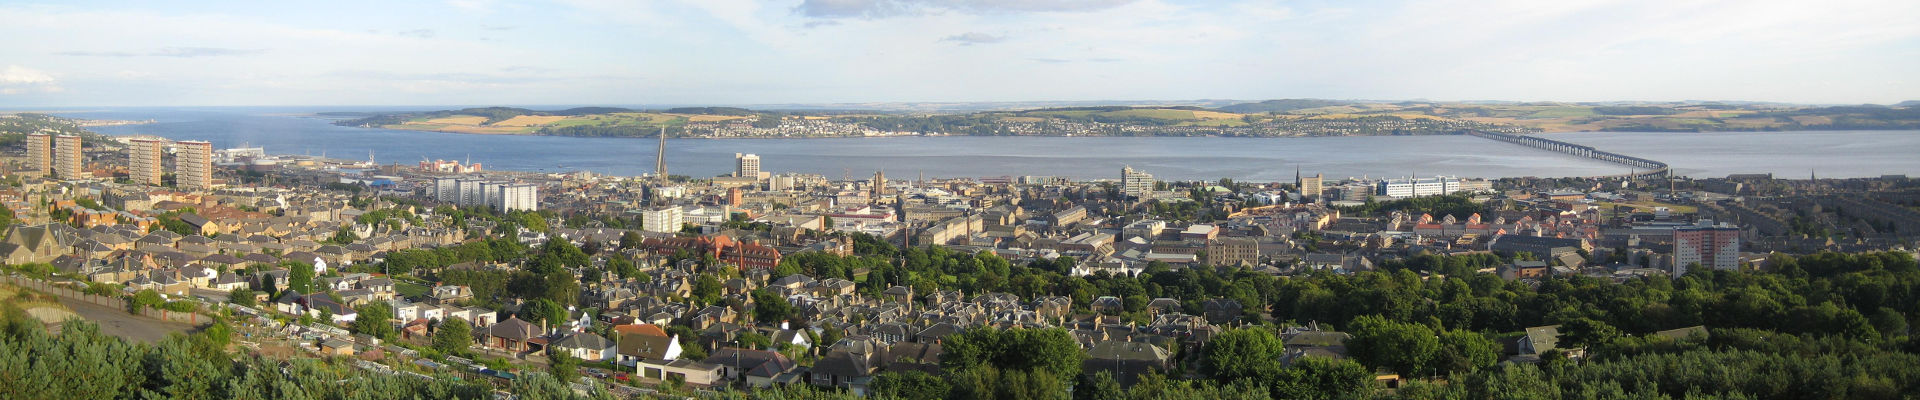 In the heart of dundee